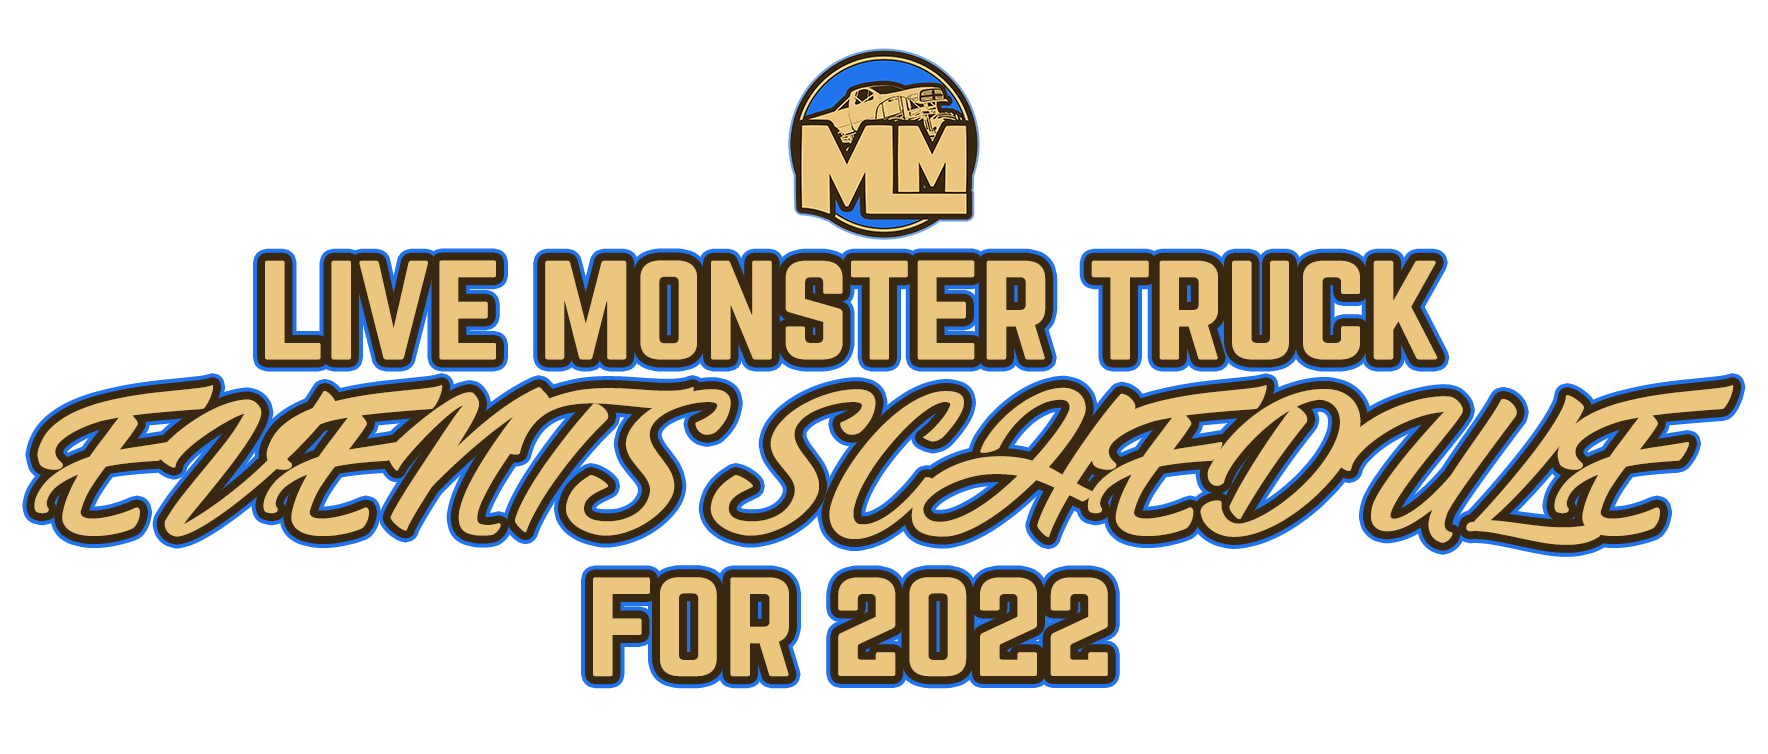 Essential List of Live Monster Truck Events List for 2022